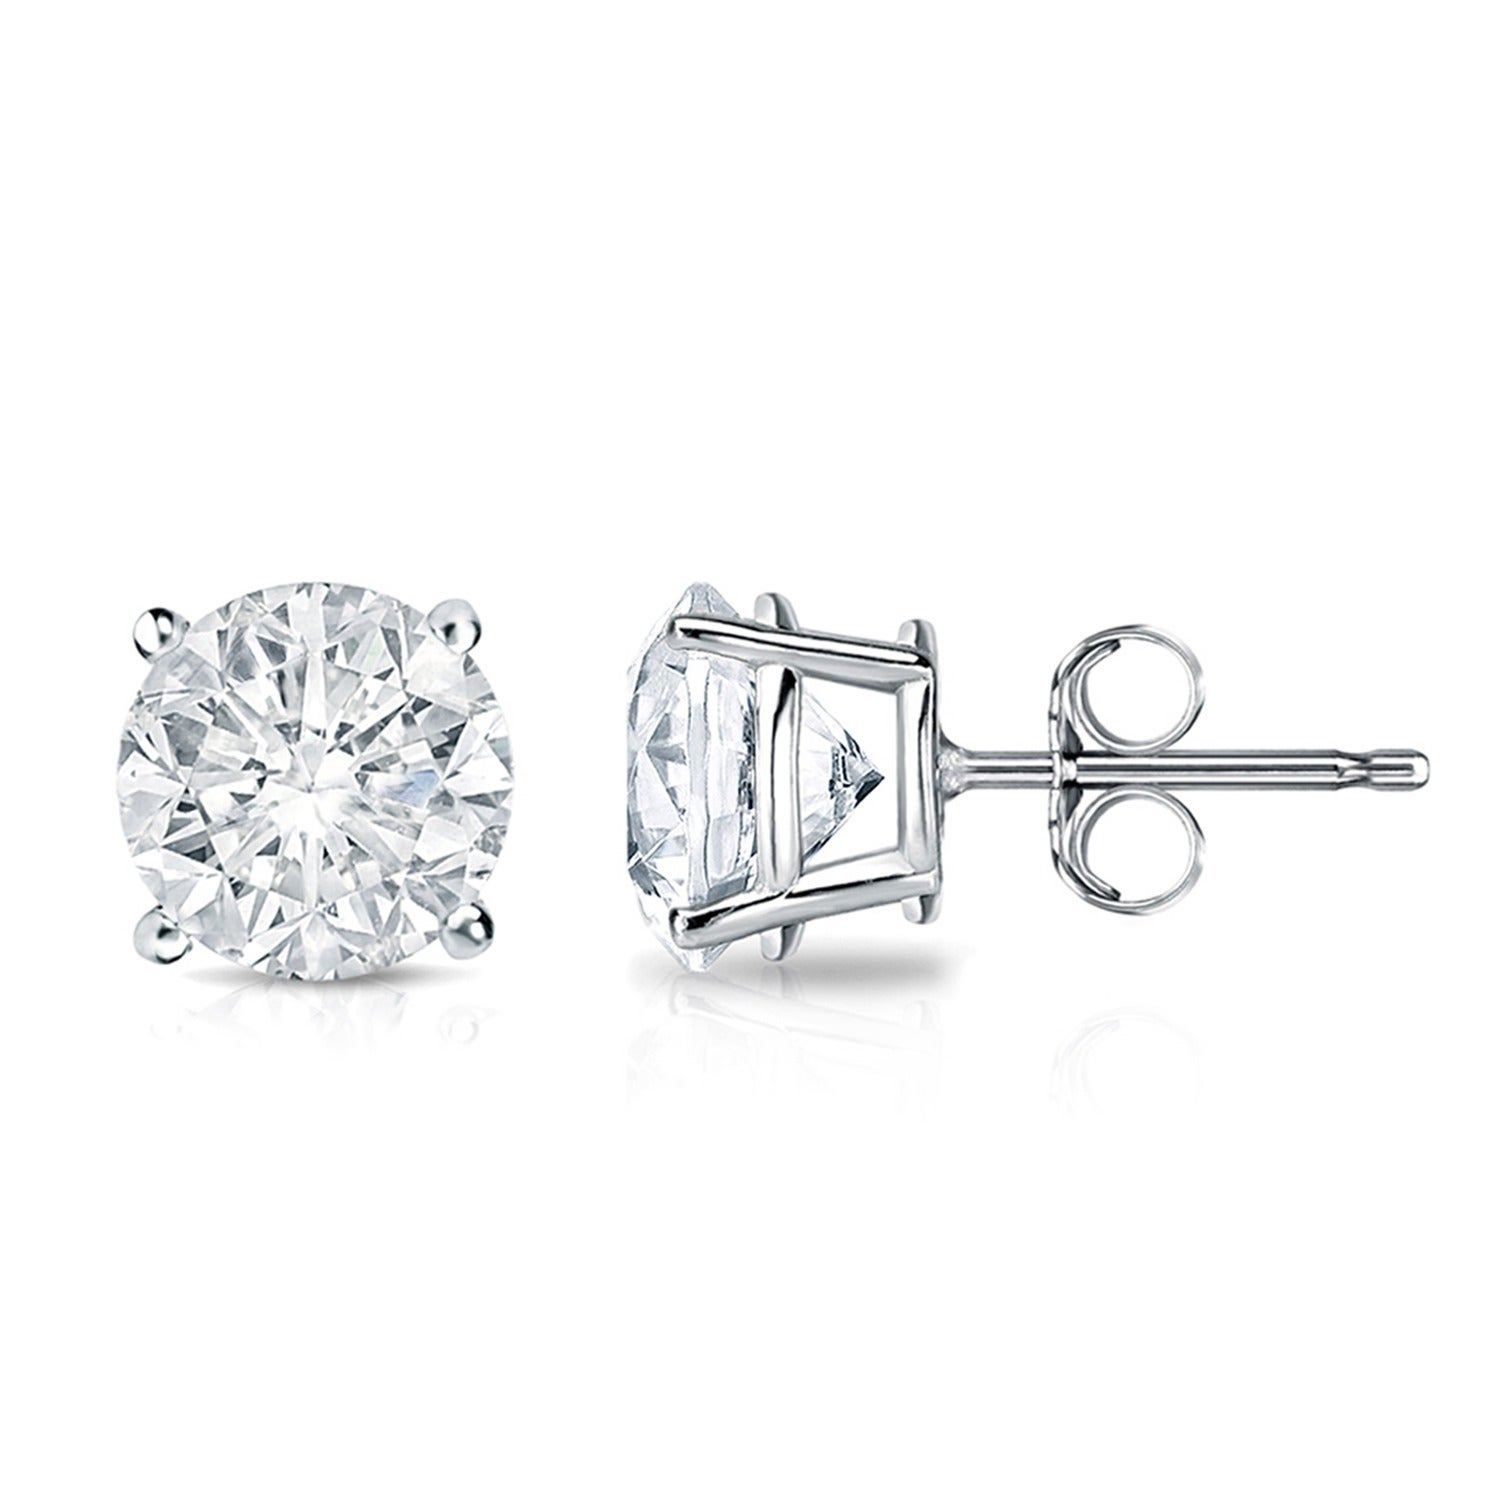 985d075f4 Auriya 1ctw Round Clarity-Enhanced Diamond Stud Earrings 18K Gold